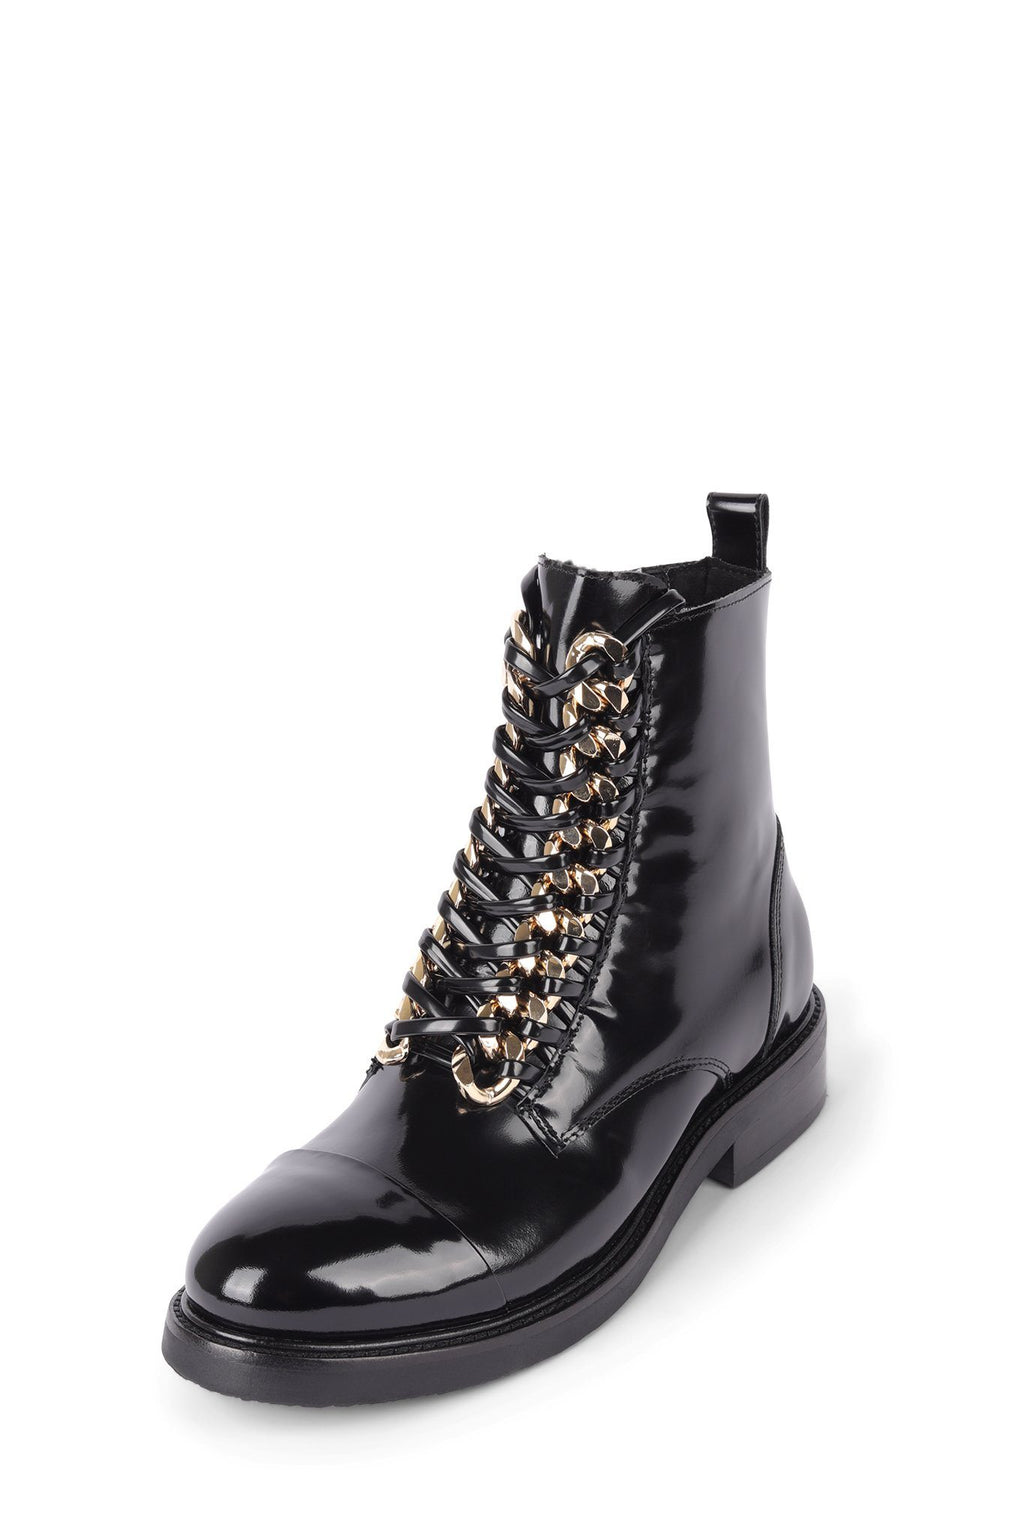 DAMON Jeffrey Campbell